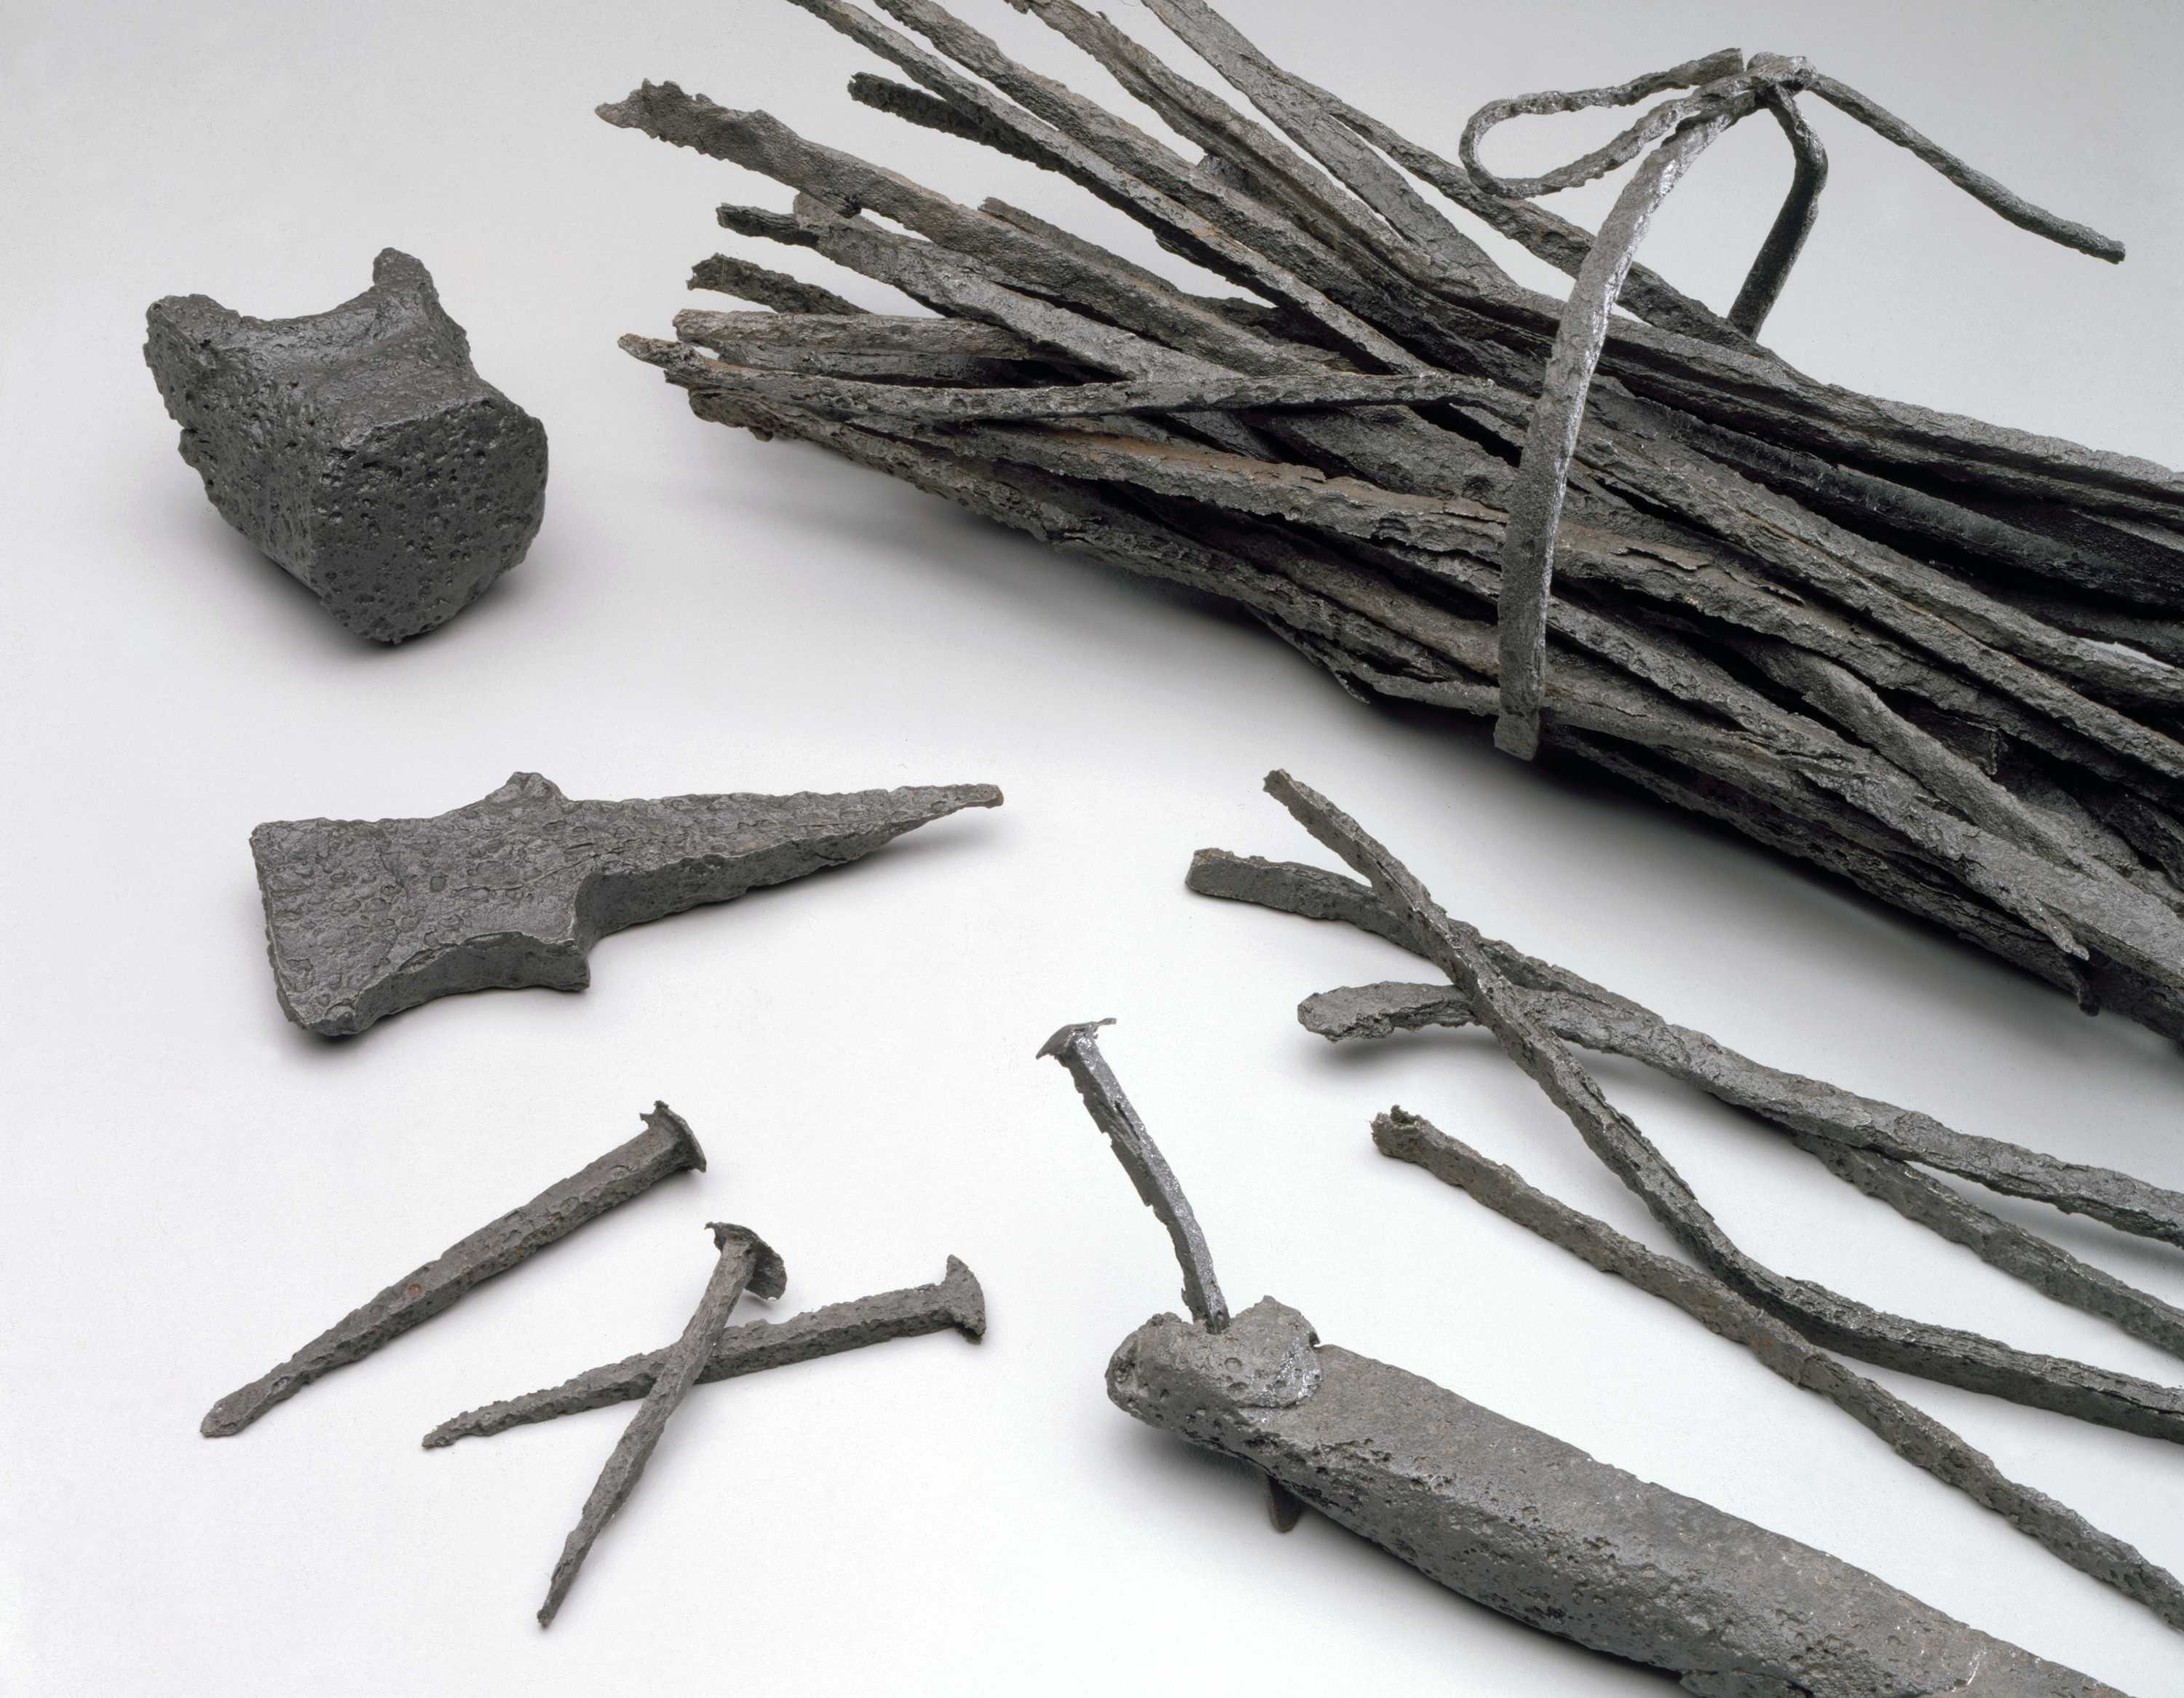 Nail-making materials excavated on Mulberry Row, Monticello, Charlottesville, Virginia, clockwise from top: nailrod, hammer head fragment, nails, hardy with nail inserted Courtesy of The Thomas Jefferson Foundation, Monticello ©Thomas Jefferson Foundation at Monticello